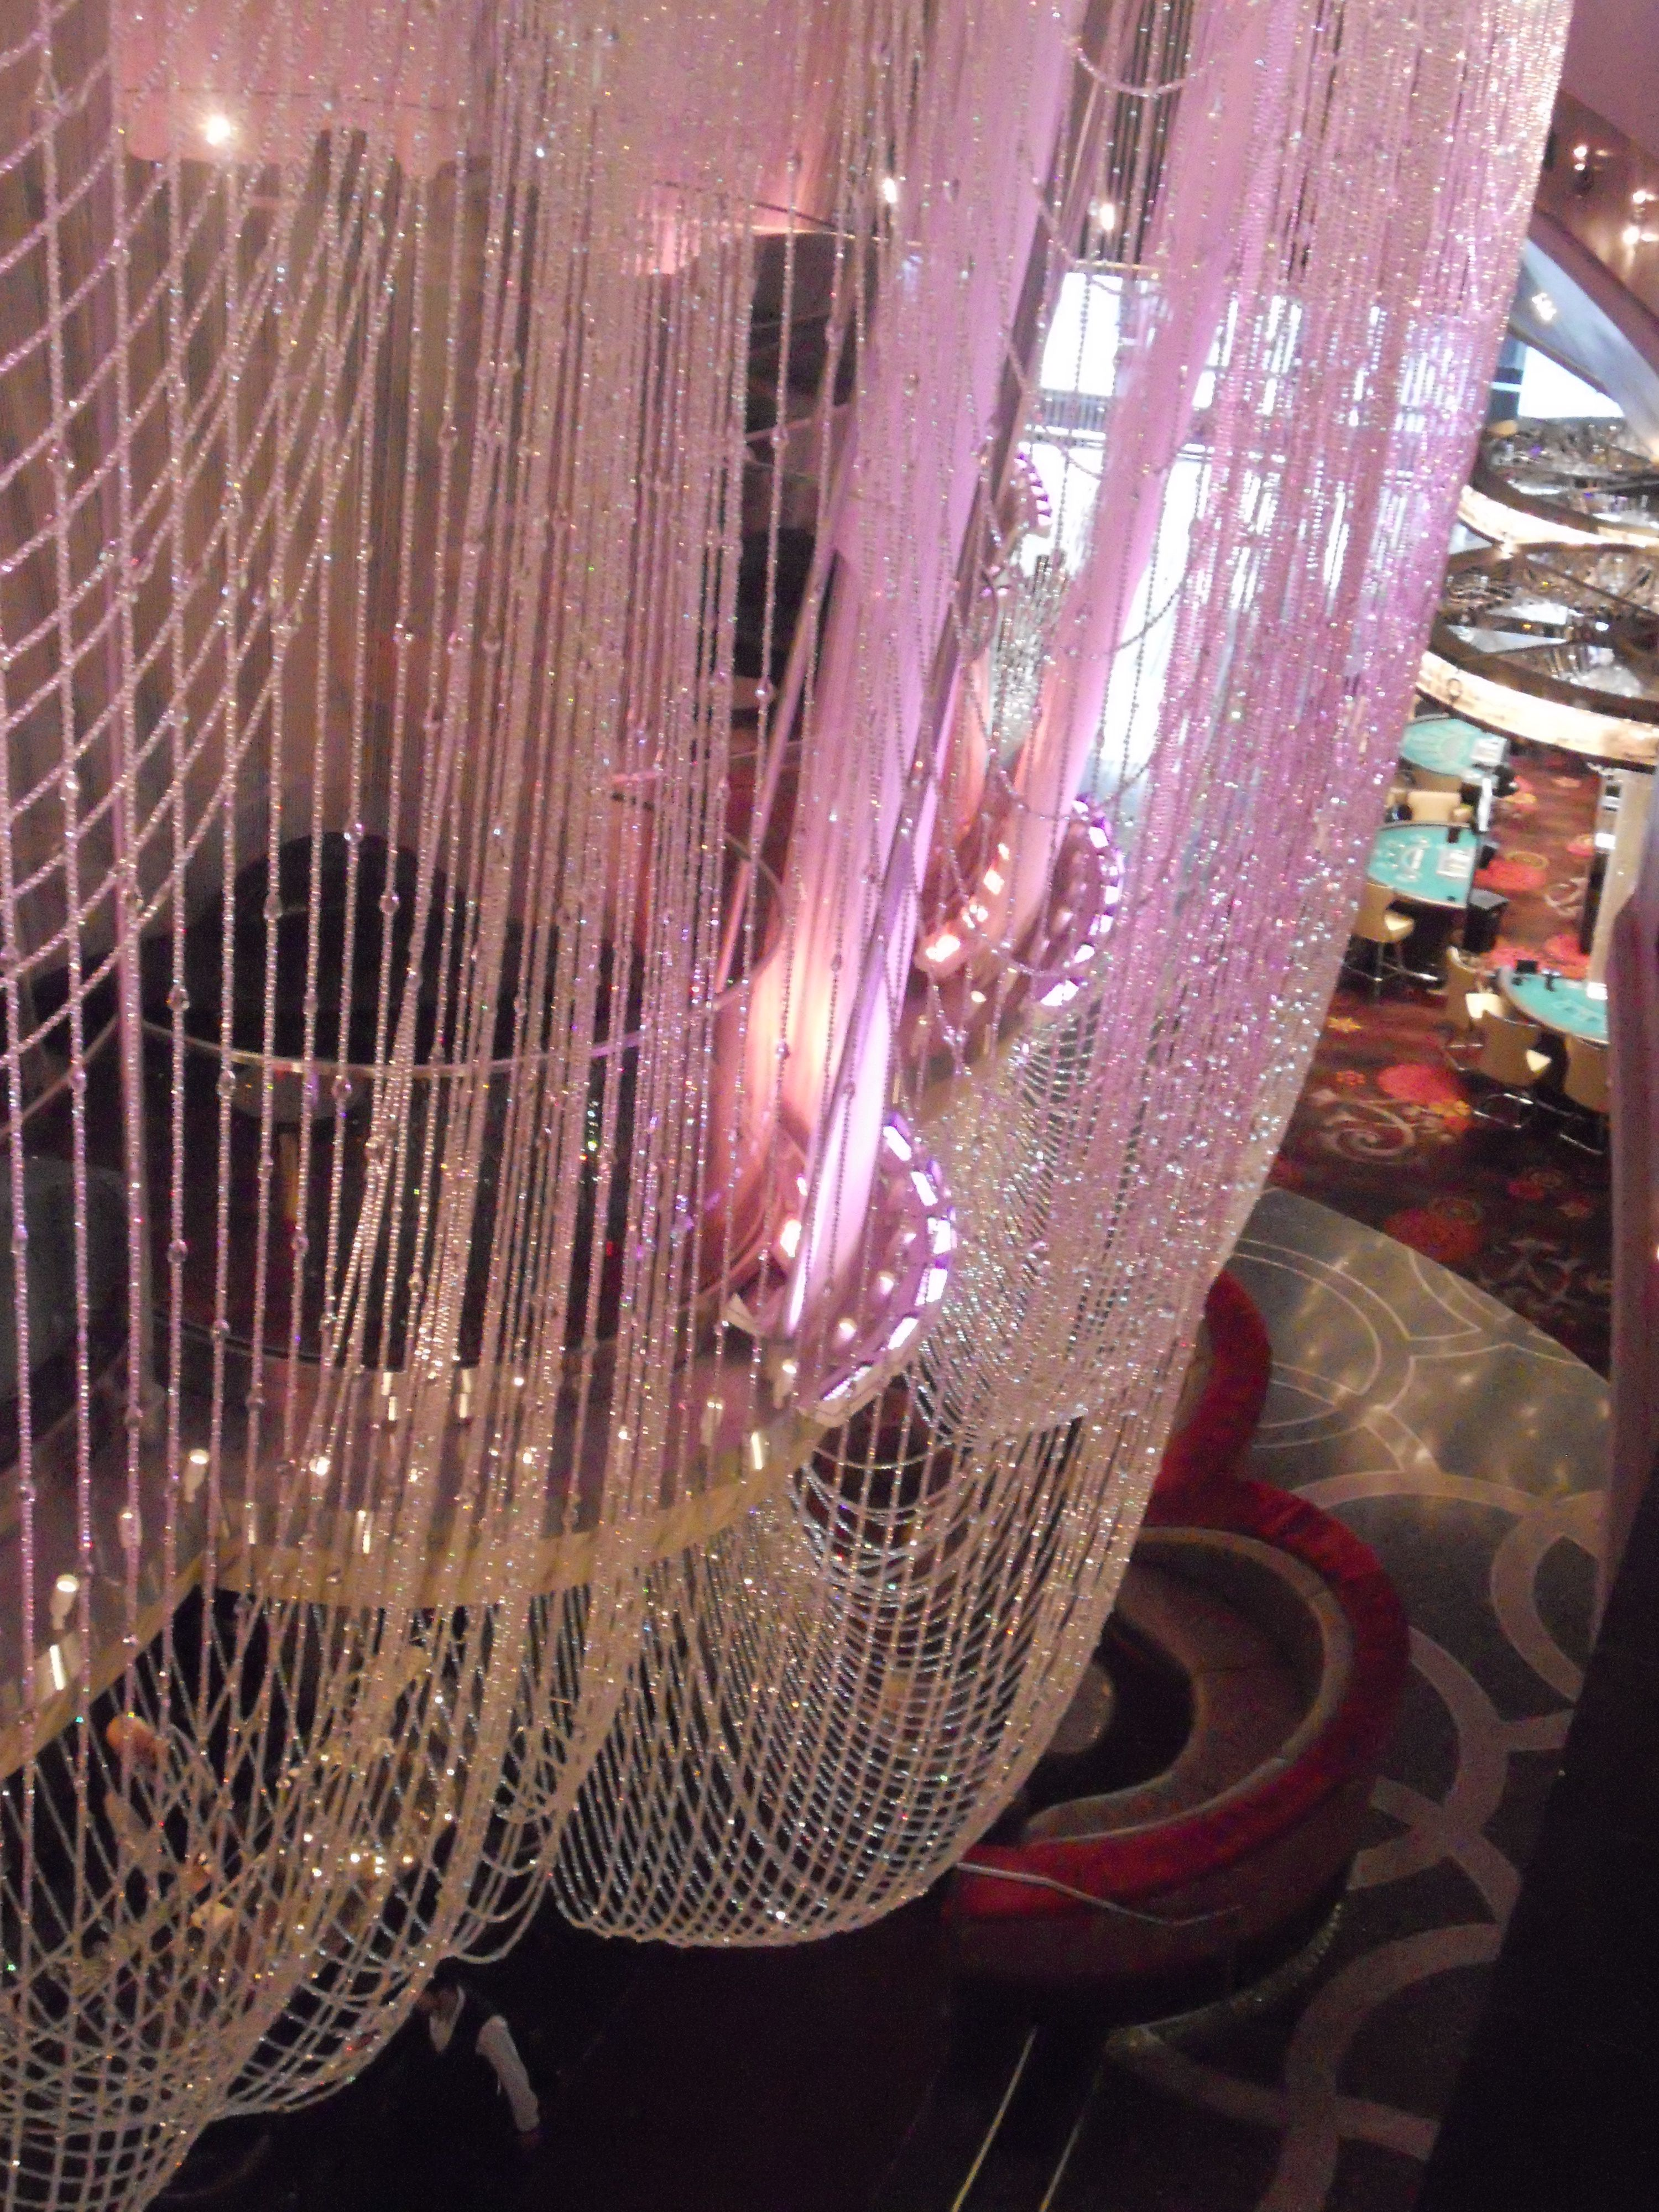 This is the chandelier bar at the cosmopolitan hotel in las vegas this is the chandelier bar at the cosmopolitan hotel in las vegas the chandelier bar is 3 stories high this is incredible looking only in vegas mozeypictures Choice Image